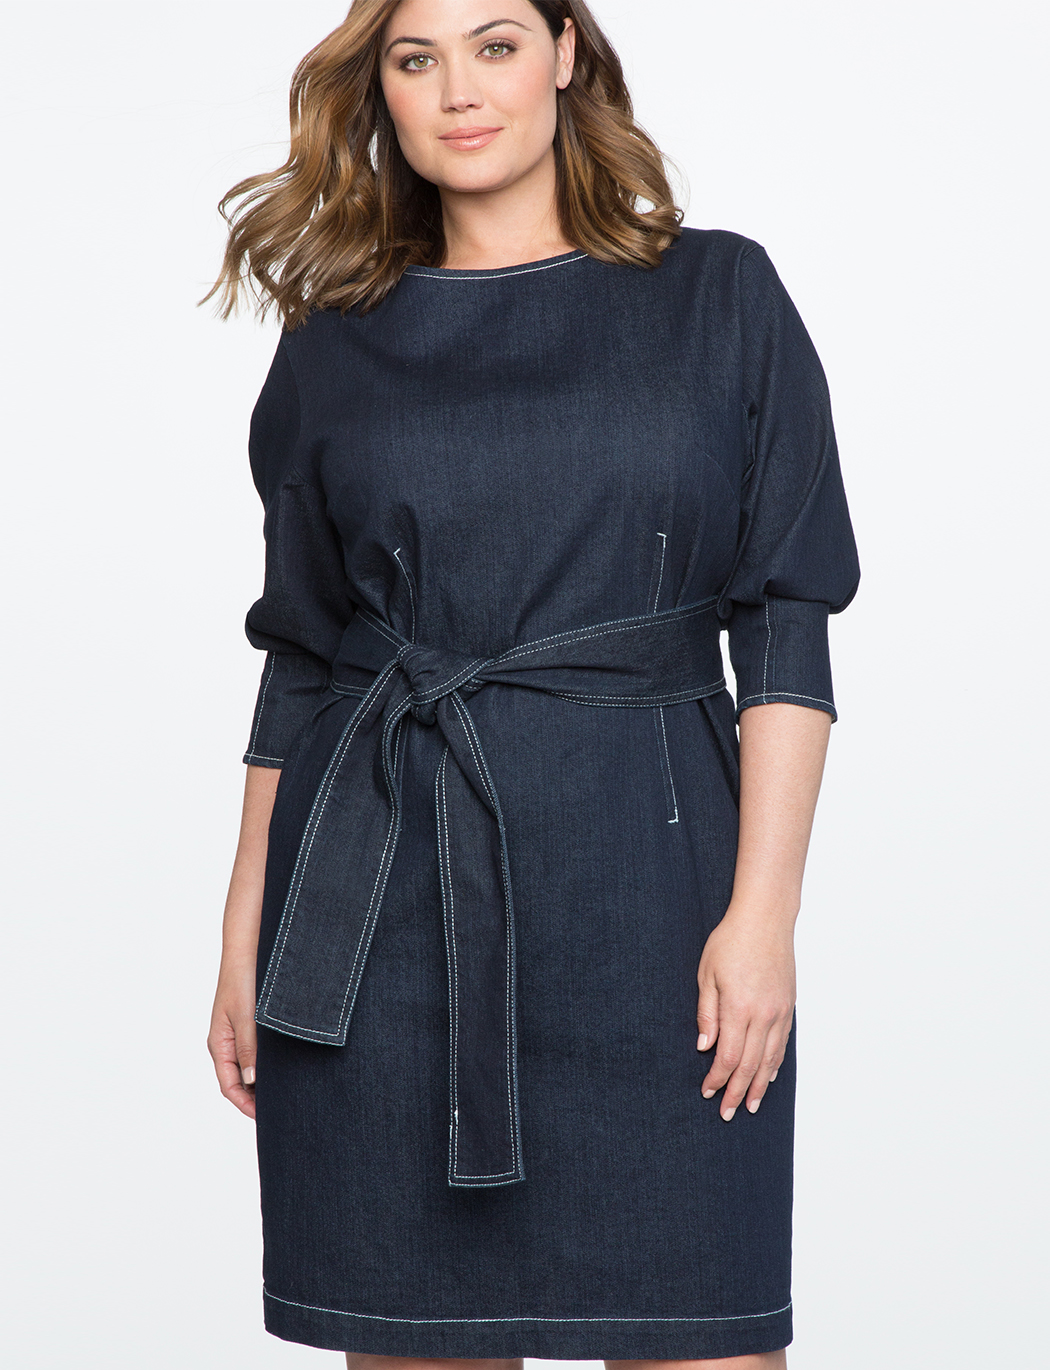 Dolman Sleeve Denim Dress | Women\'s Plus Size Dresses | ELOQUII